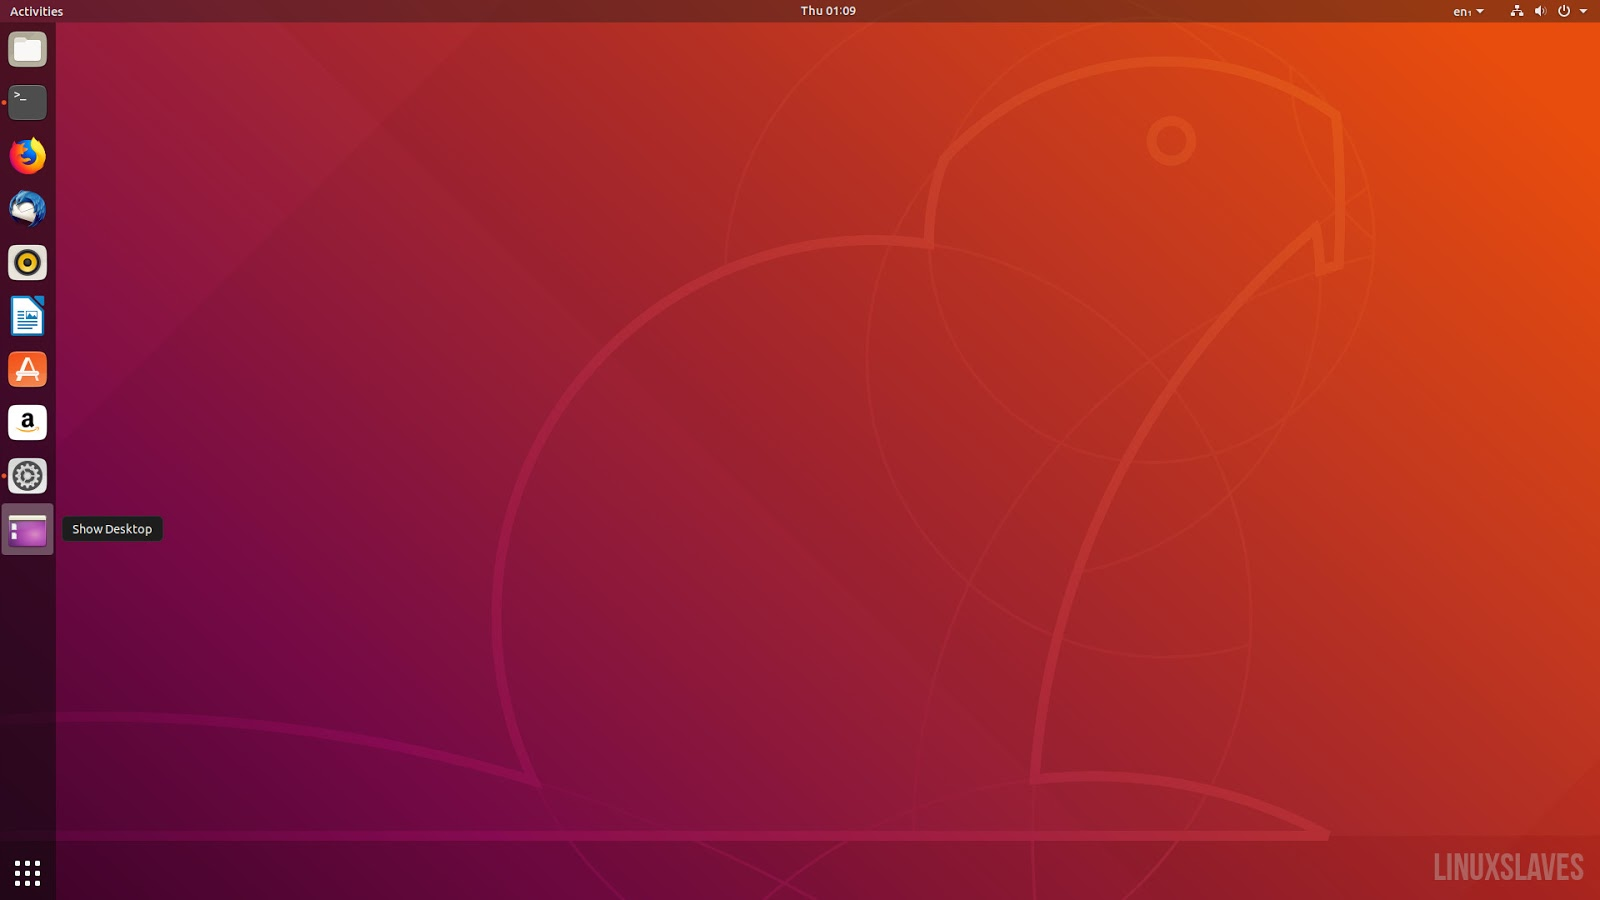 How to Add Show Desktop Button in Ubuntu 18 04 and 18 10